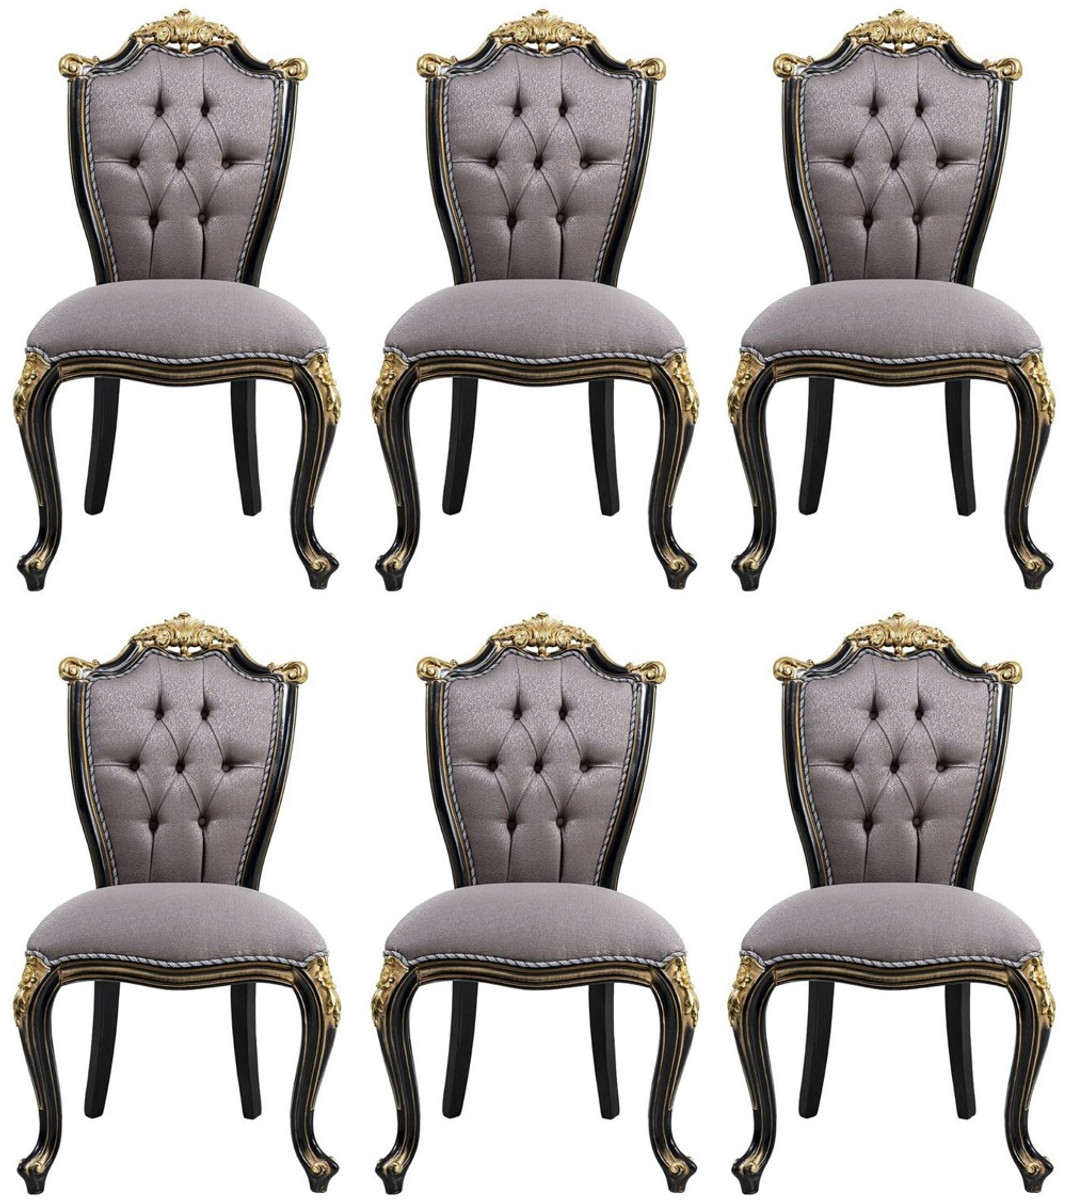 Casa Padrino Luxury Baroque Dining Chair Set Silver / Black / Gold    Handmade Kitchen Chairs Set of 9   Baroque Dining Room Furniture   Noble &  ...